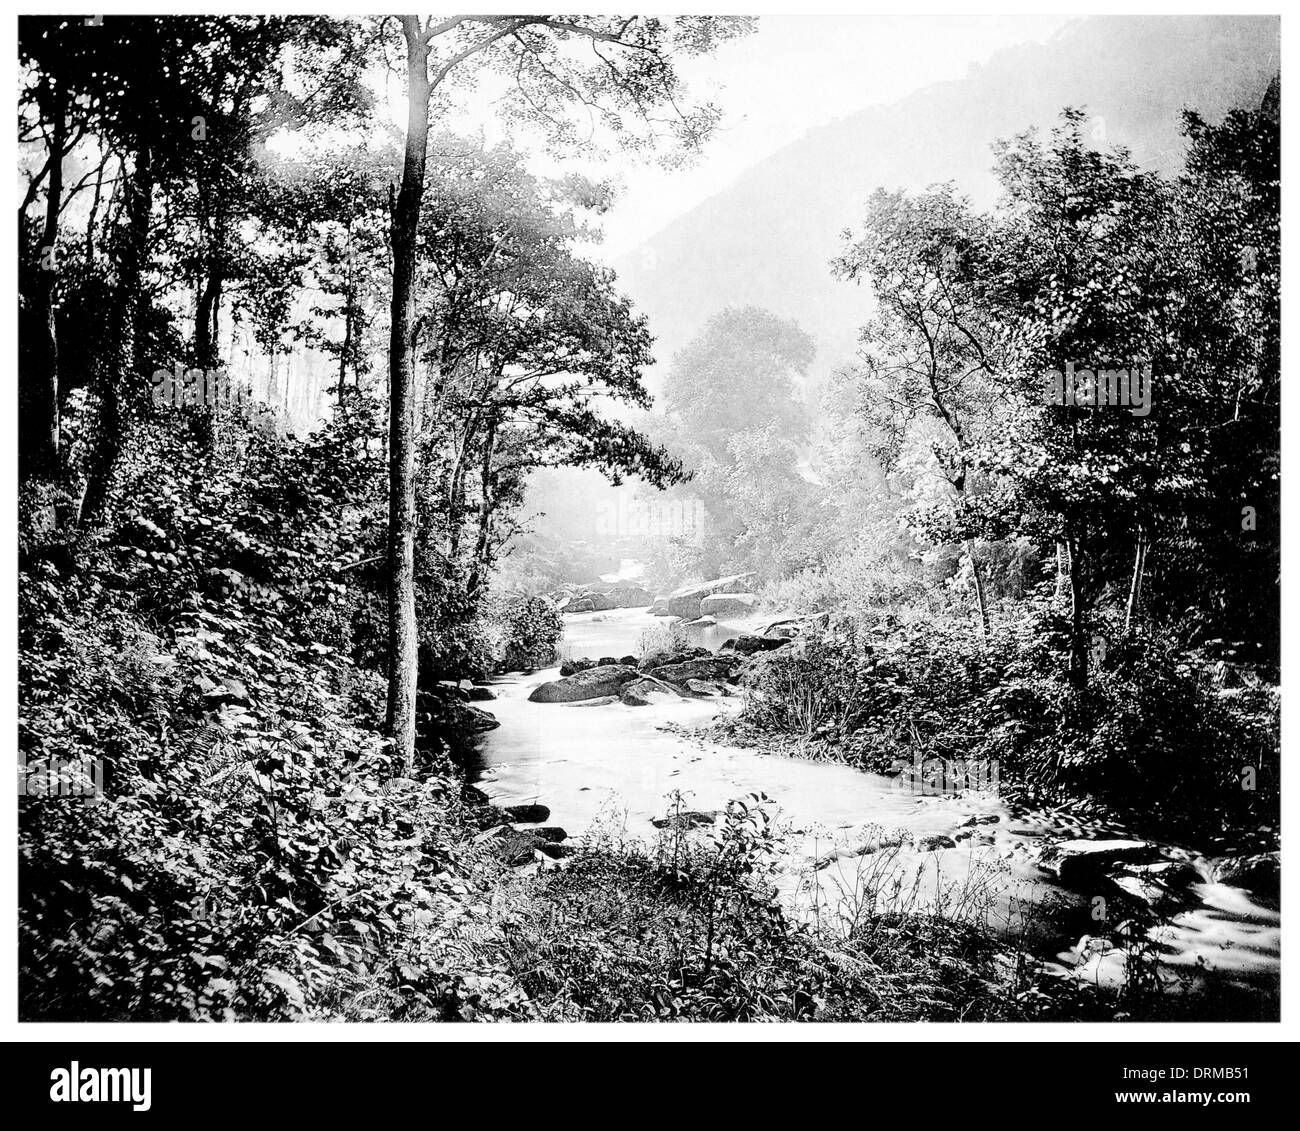 Brendon Water, Rockford hamlet  of the New Forest National Park of Hampshire, England Photographed Circa 1910 - Stock Image